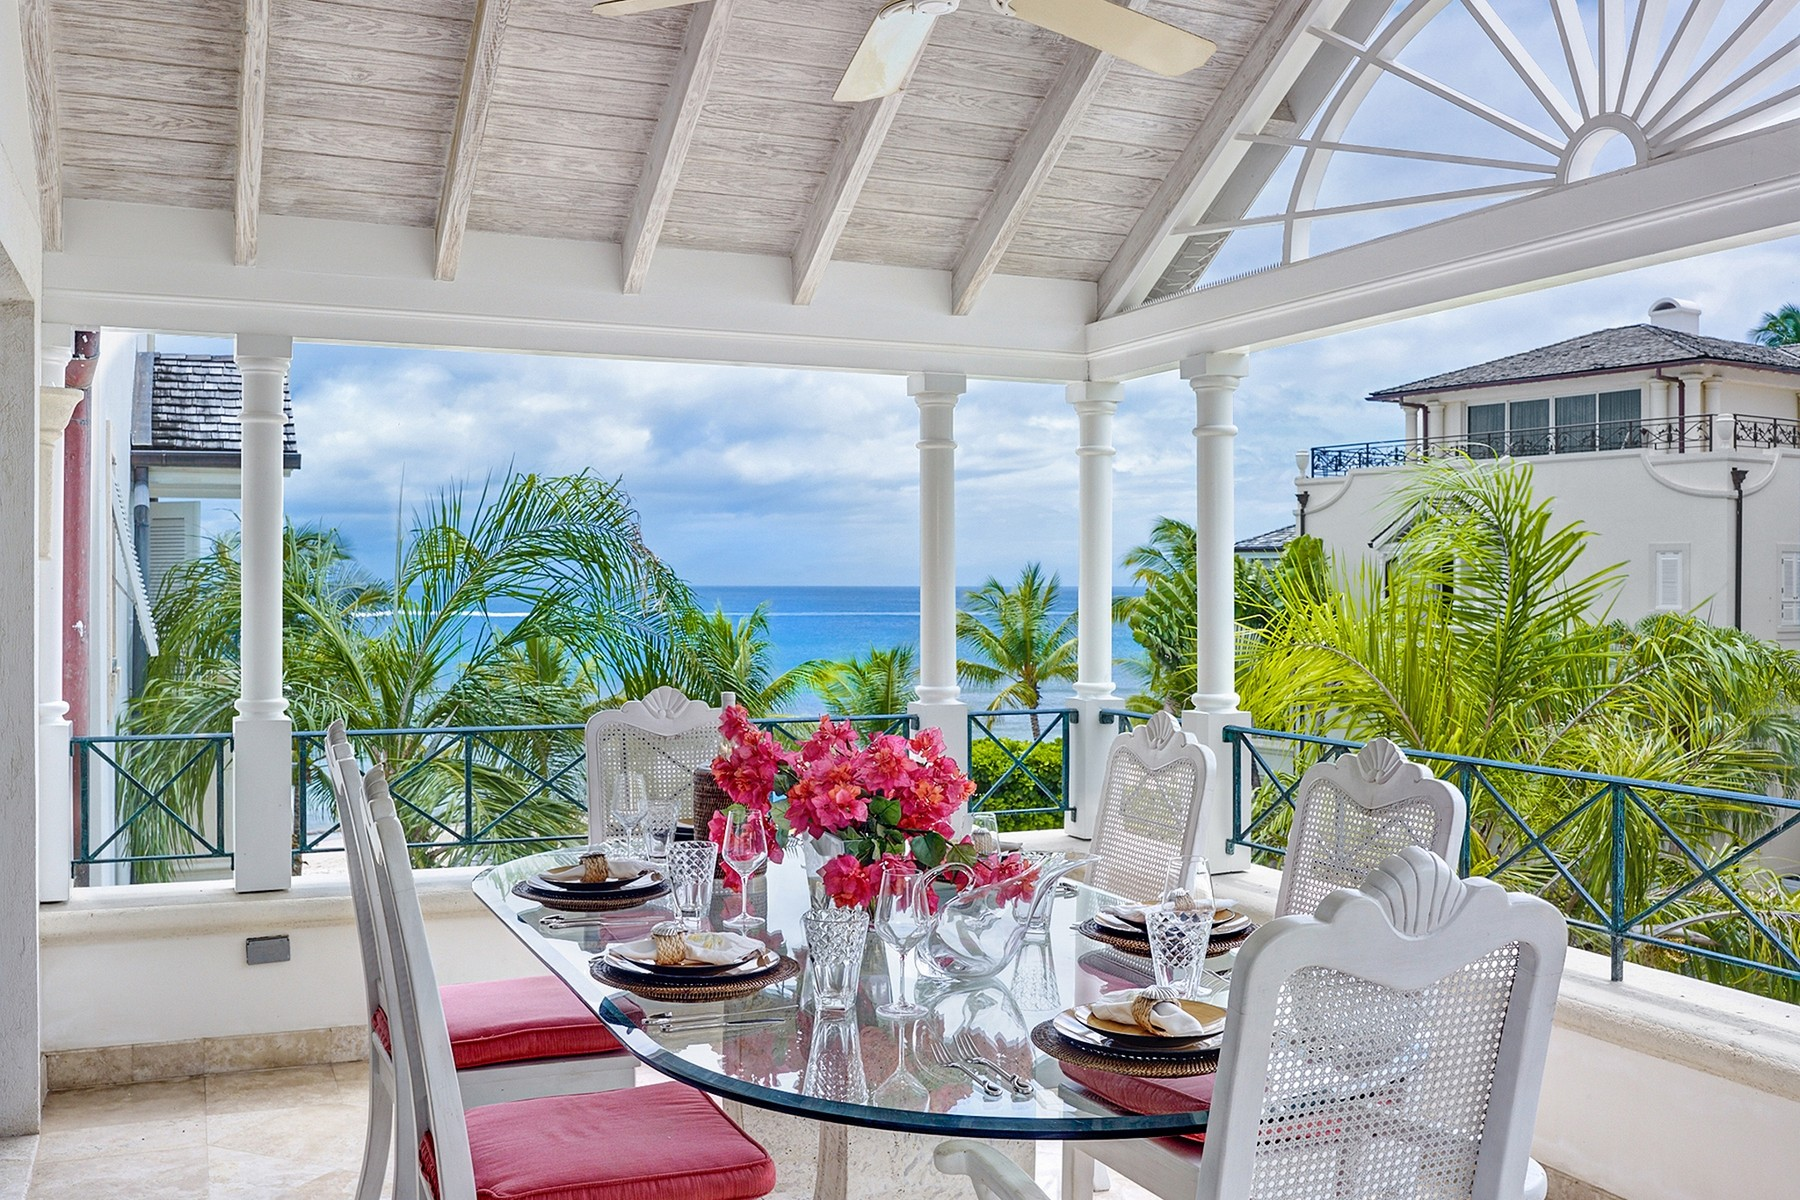 Single Family Home for Rent at Schooner Bay 306 Saint Peter, Saint Peter Barbados